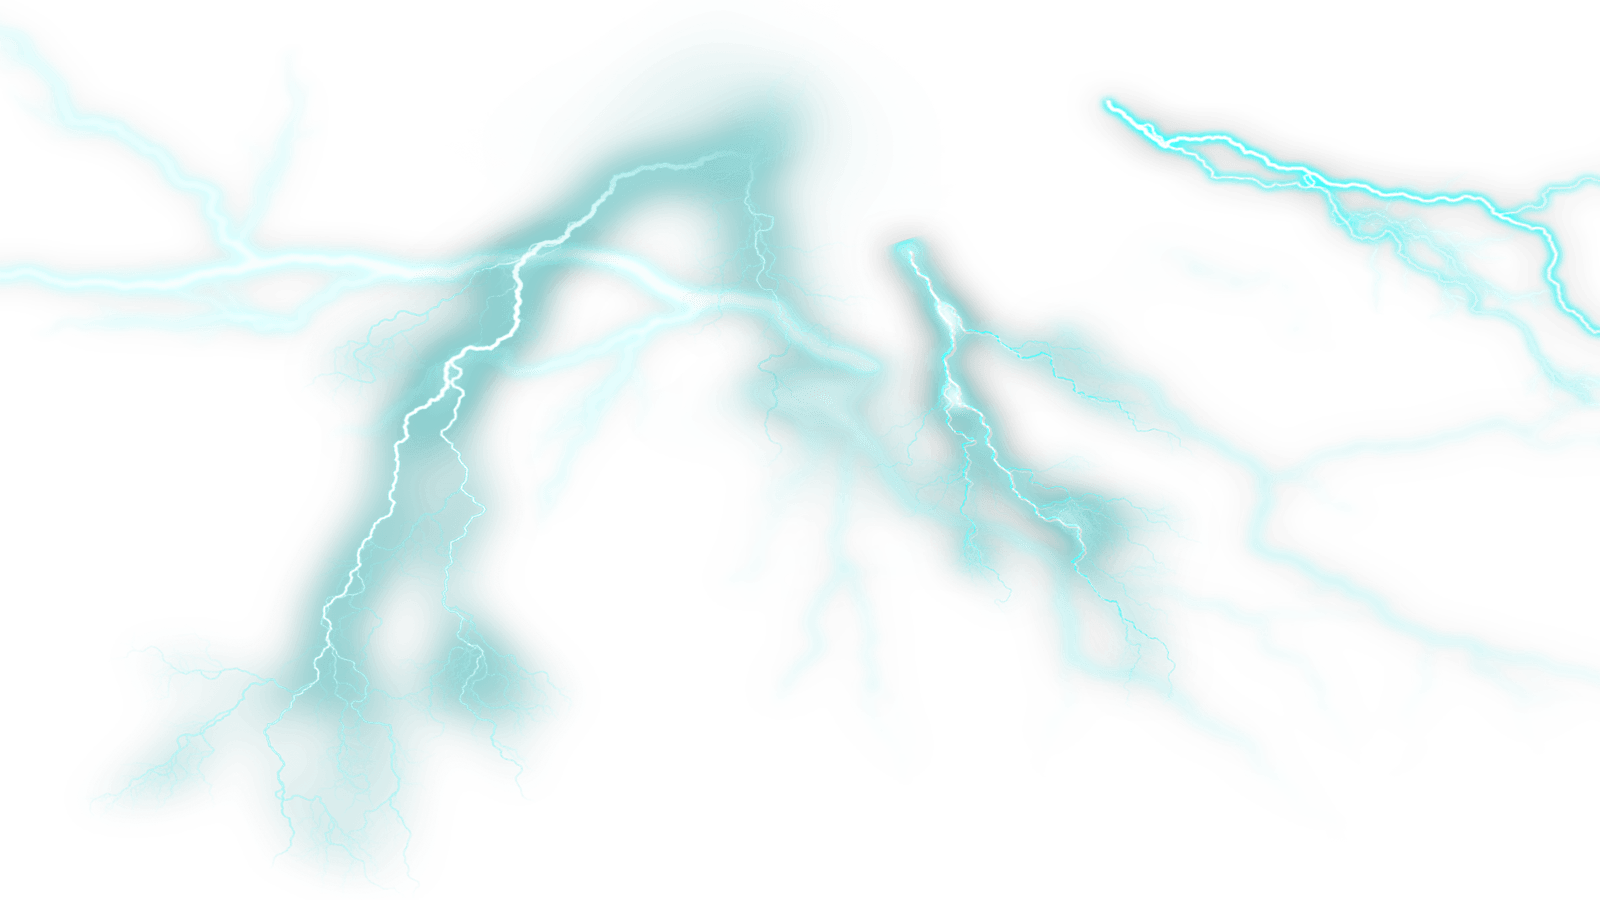 Thunderstorm clipart transparent. Png thunder images pluspng